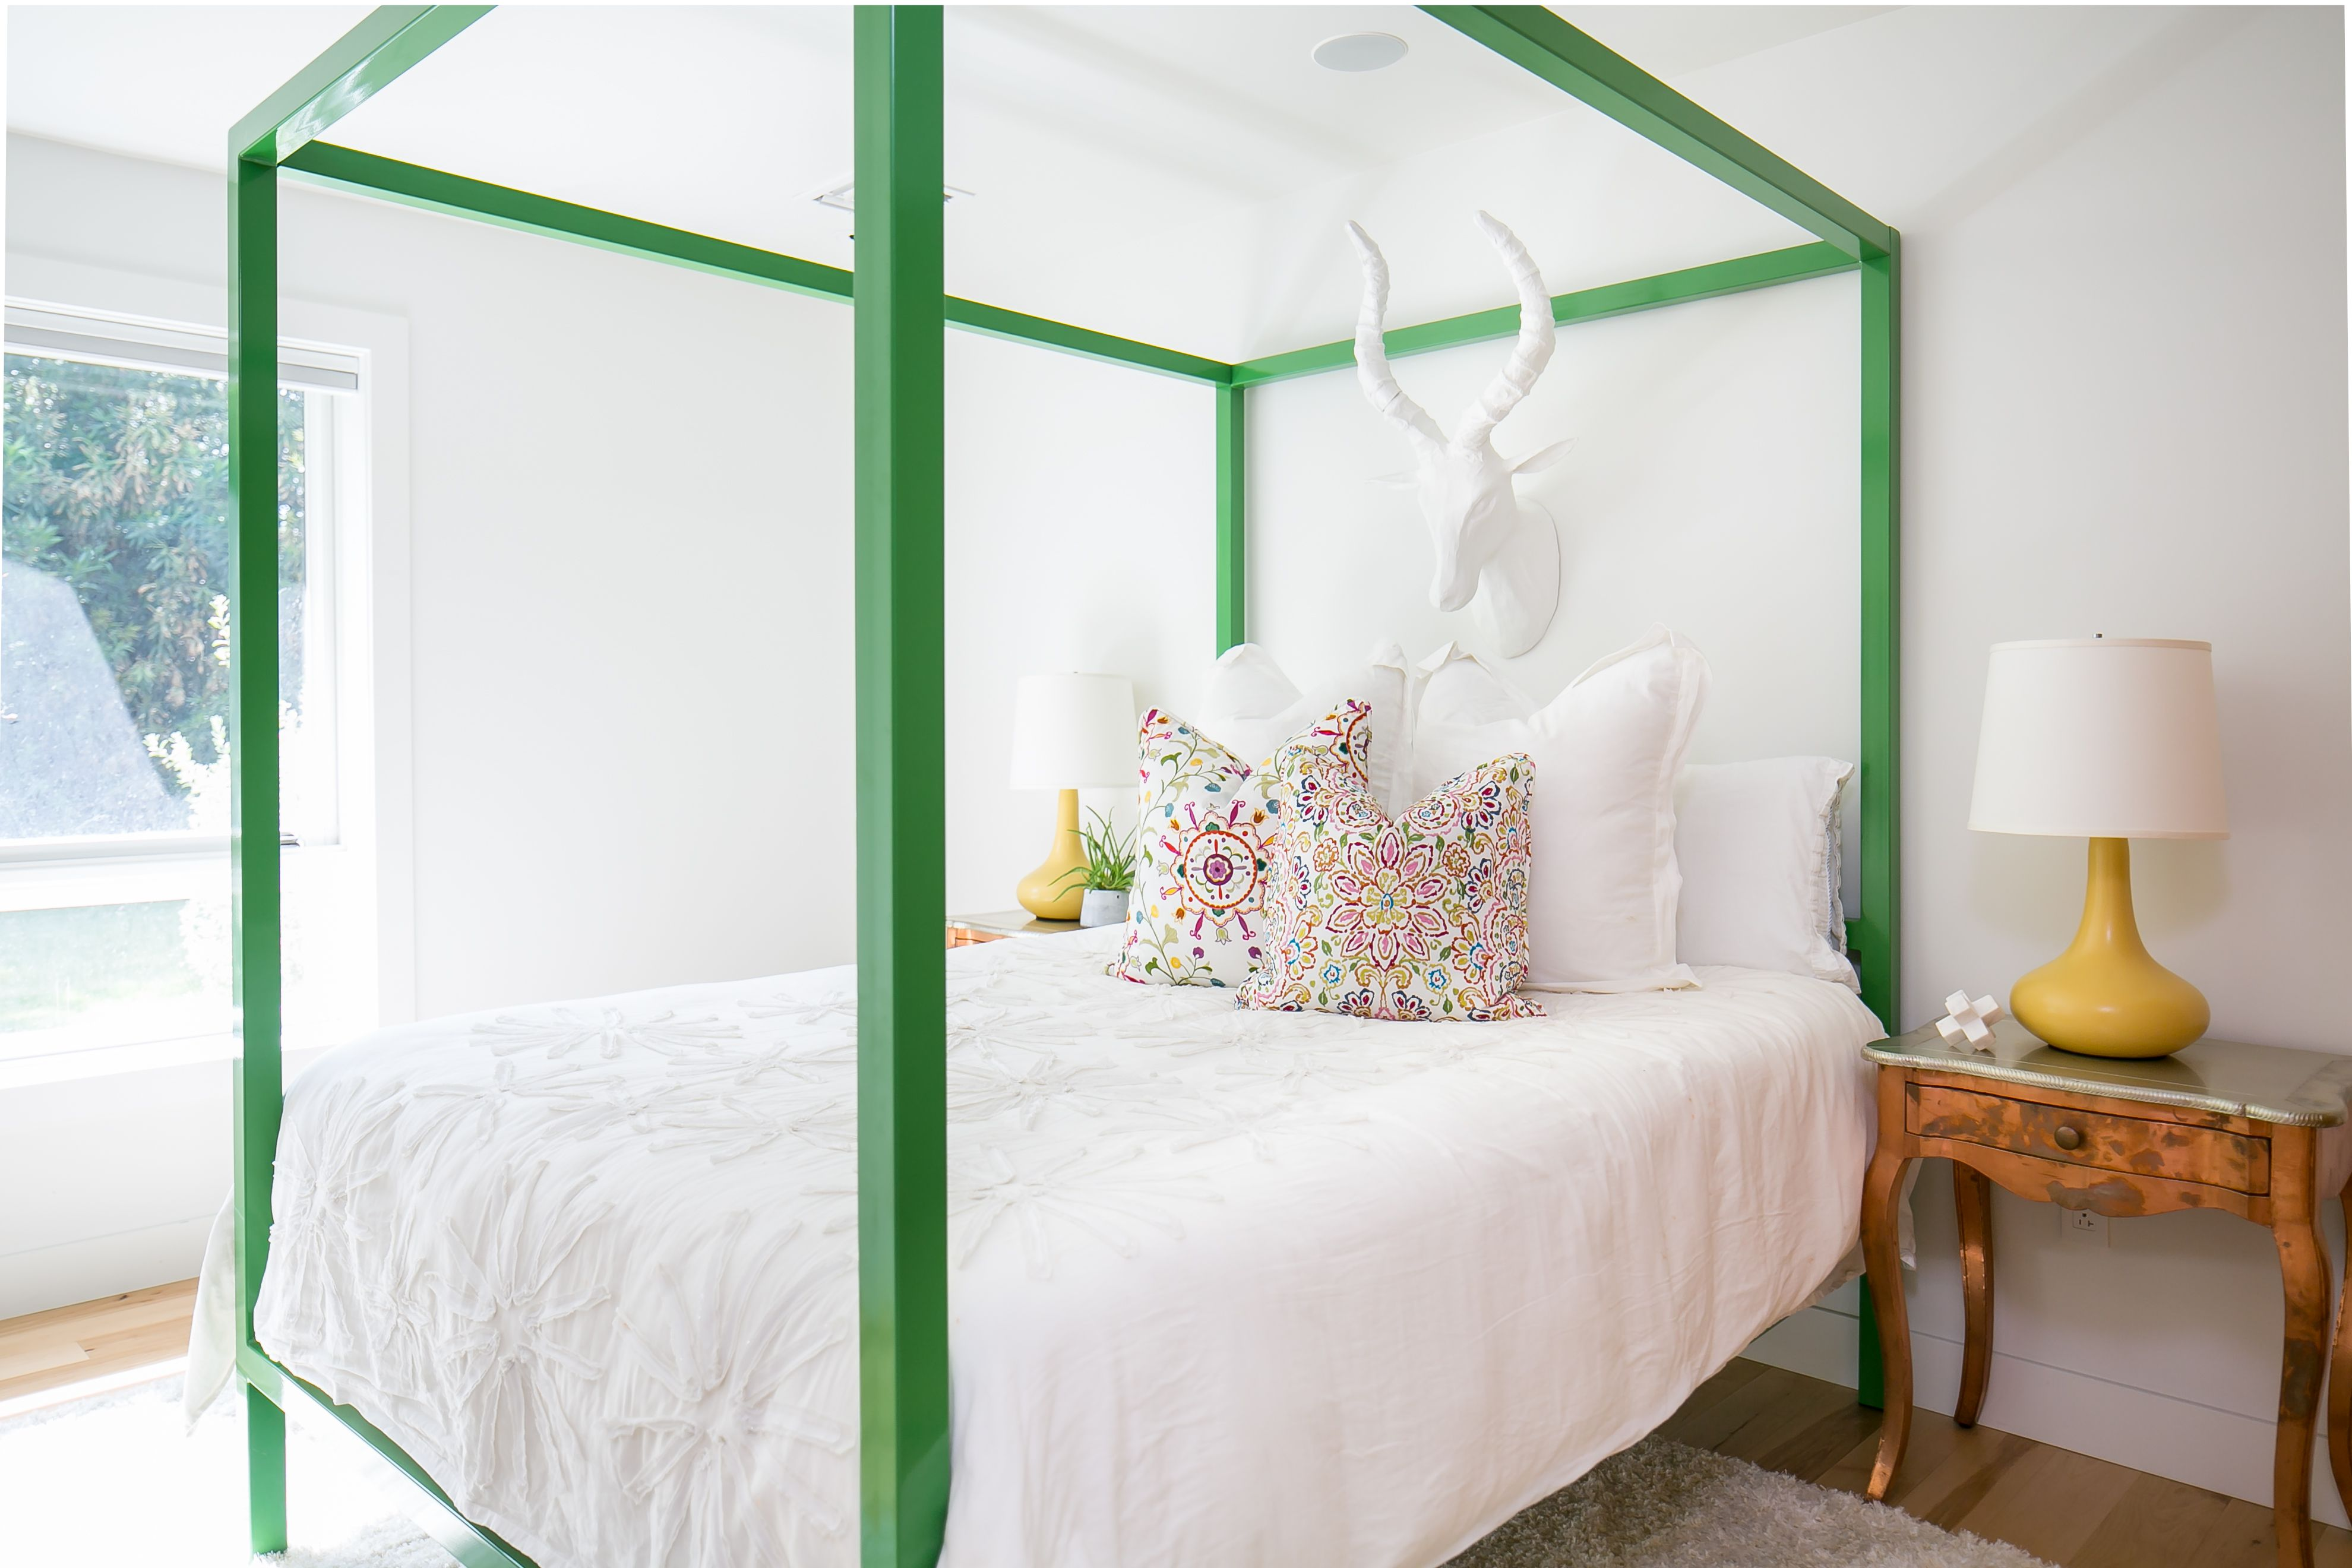 Minimalist Guest Room With Fun Accents Yellow Table Lamps Green Bed Frame And Ceramic Animal Head Wall D With Images Green Bedding Interior Design Firms Interior Design